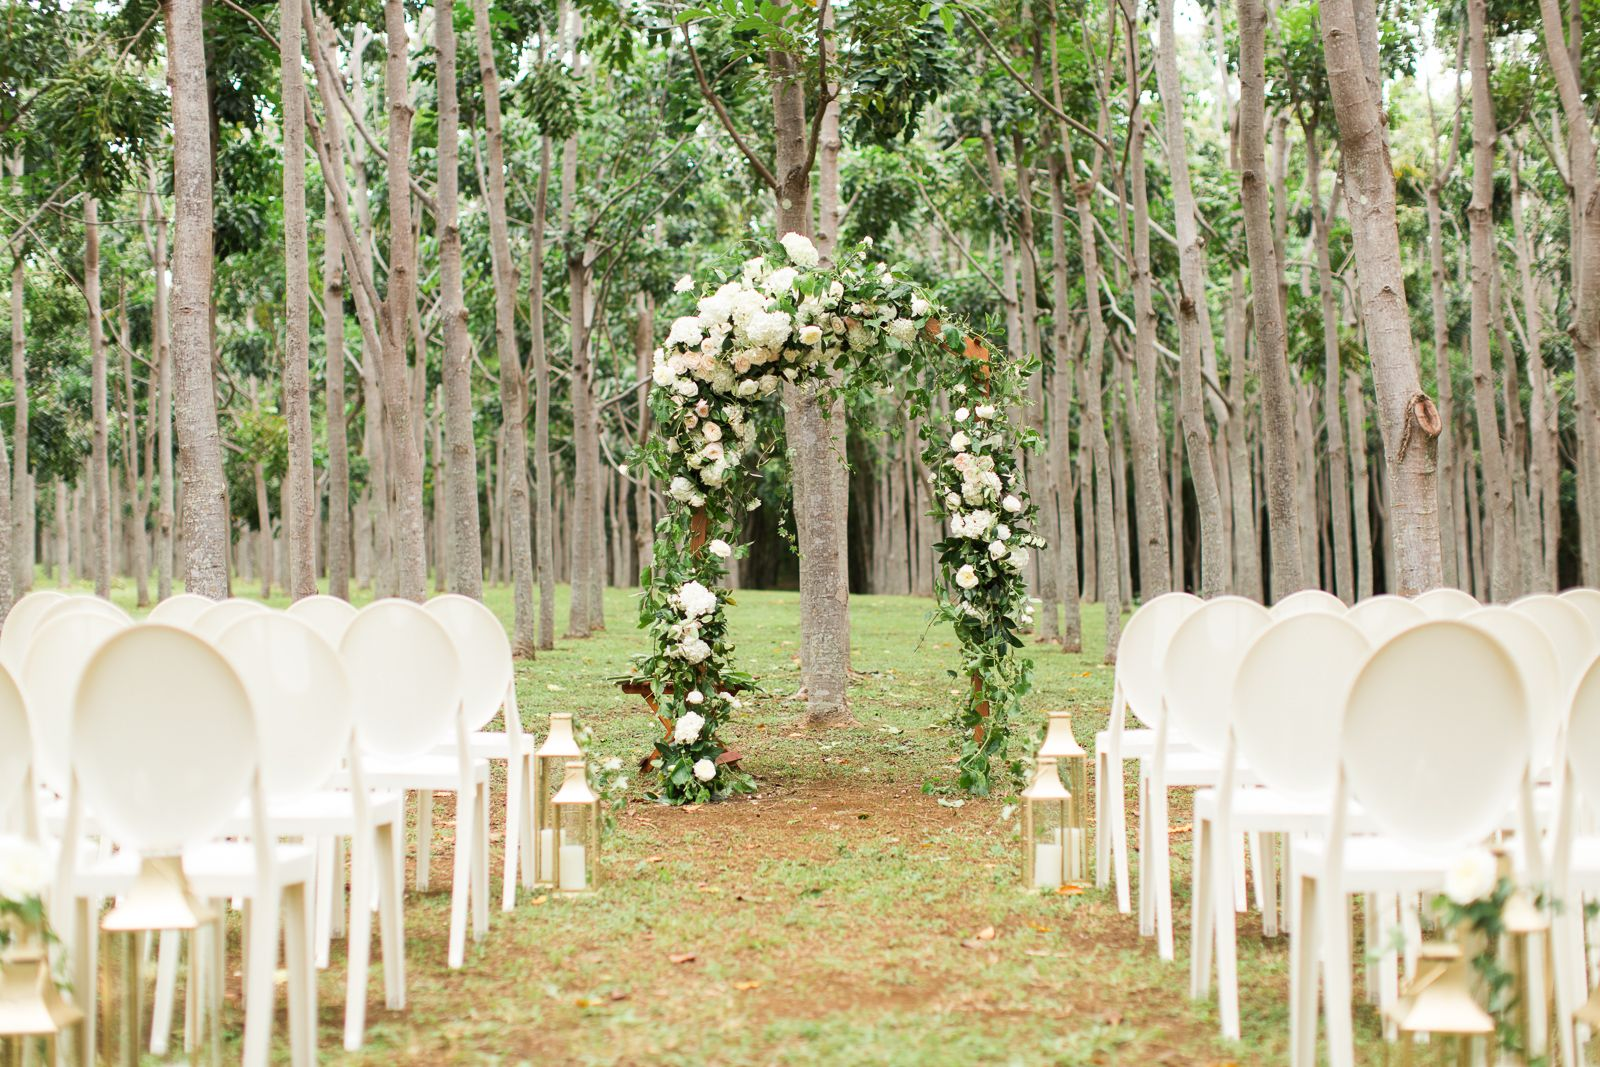 wedding decorations chairs receptions high folding 35 outdoor ideas for a fun outside spring charming